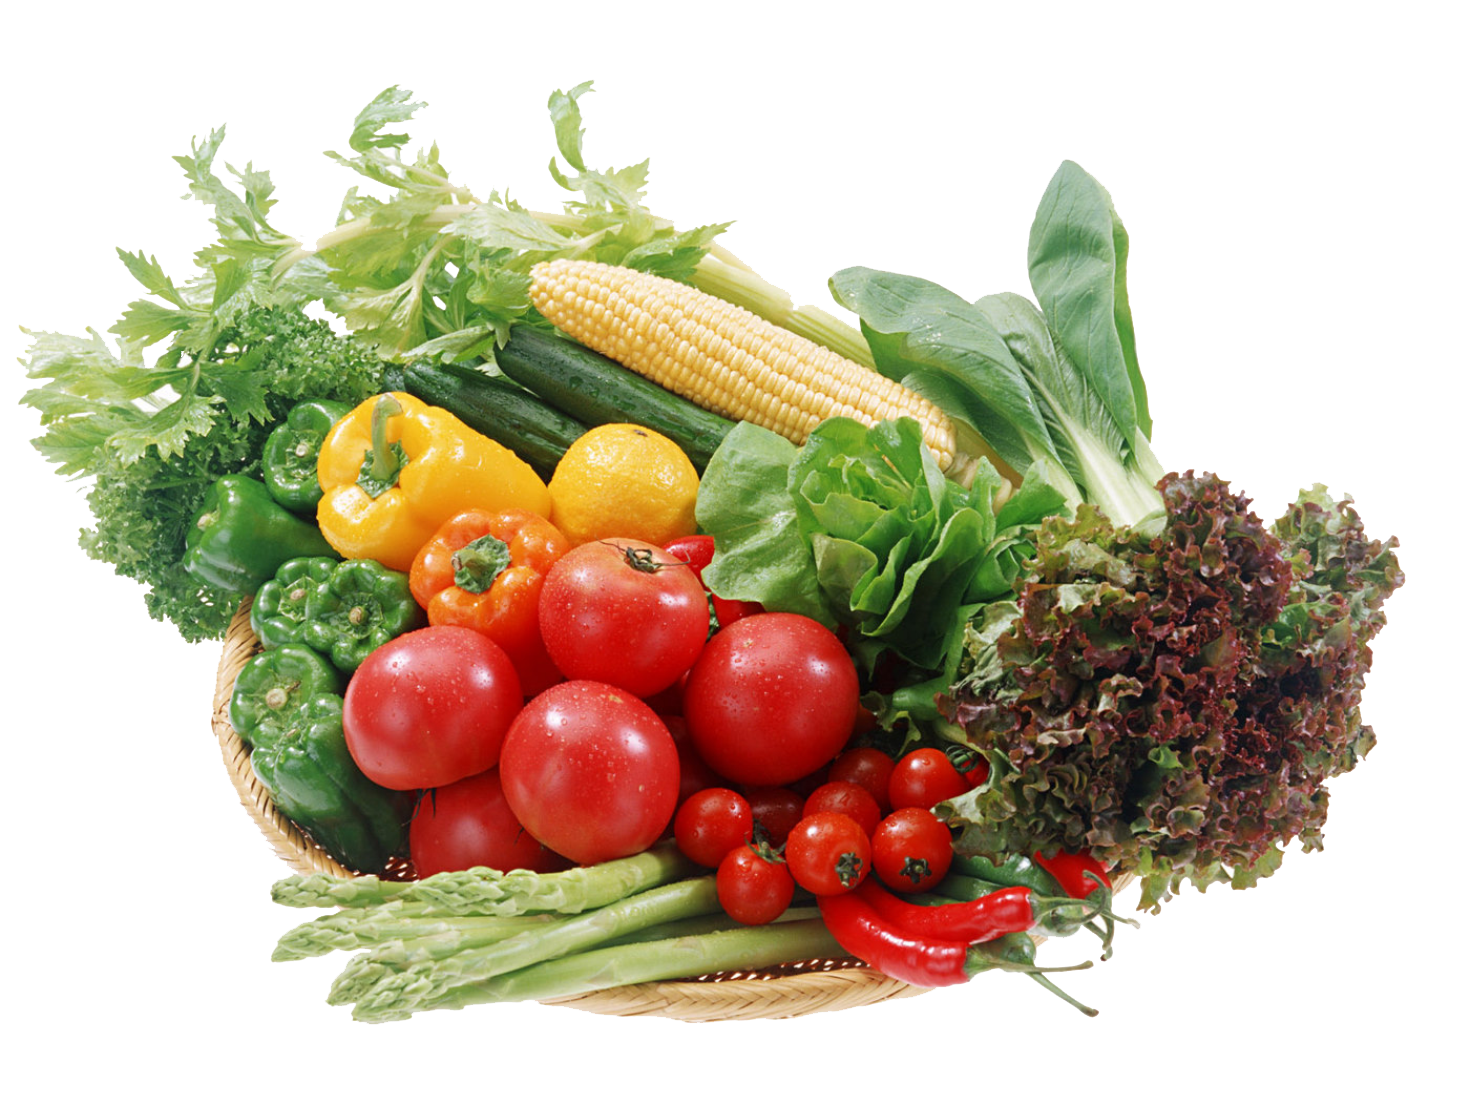 vegetables, download vegetable png image png image pngimg #15397